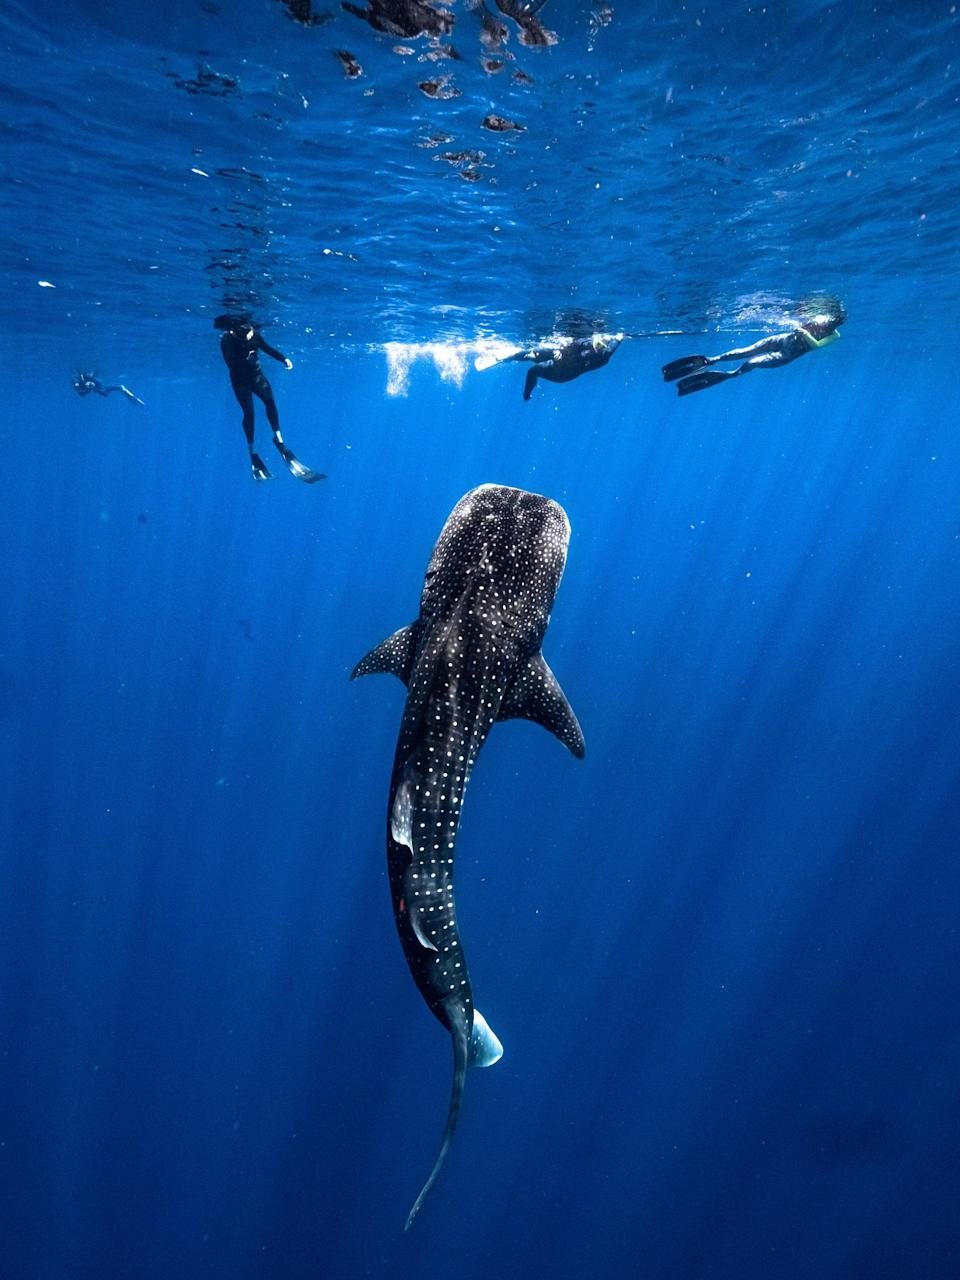 With Western Australia-based tour operator Ningaloo Discovery, travelers can book a sailing catamaran tour to swim with whale sharks.